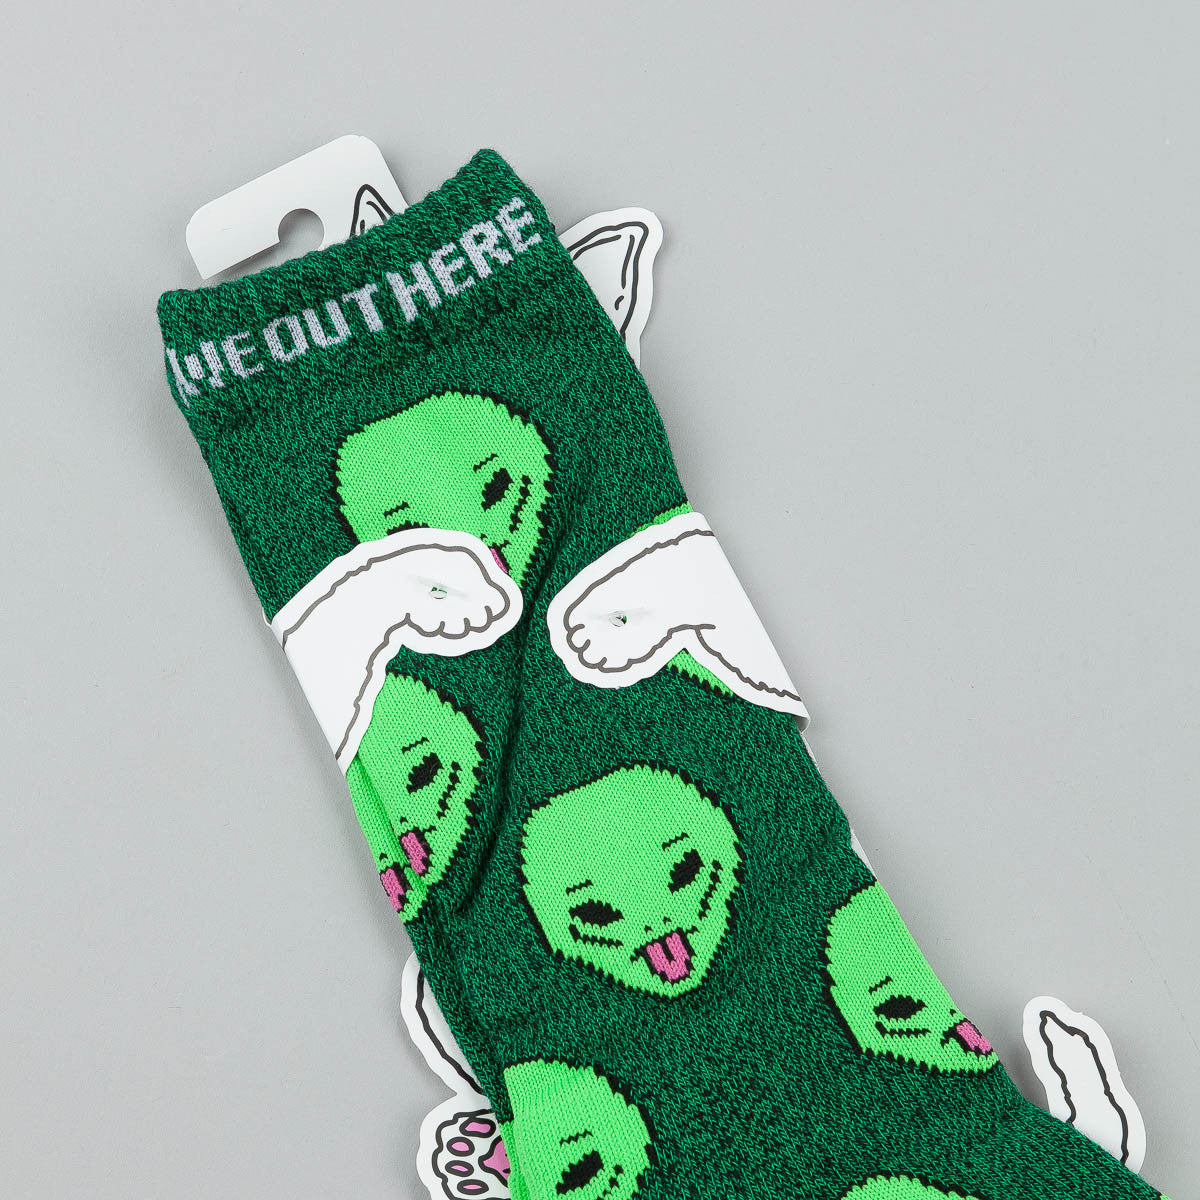 Rip N Dip We Out Here Socks - Green Heather